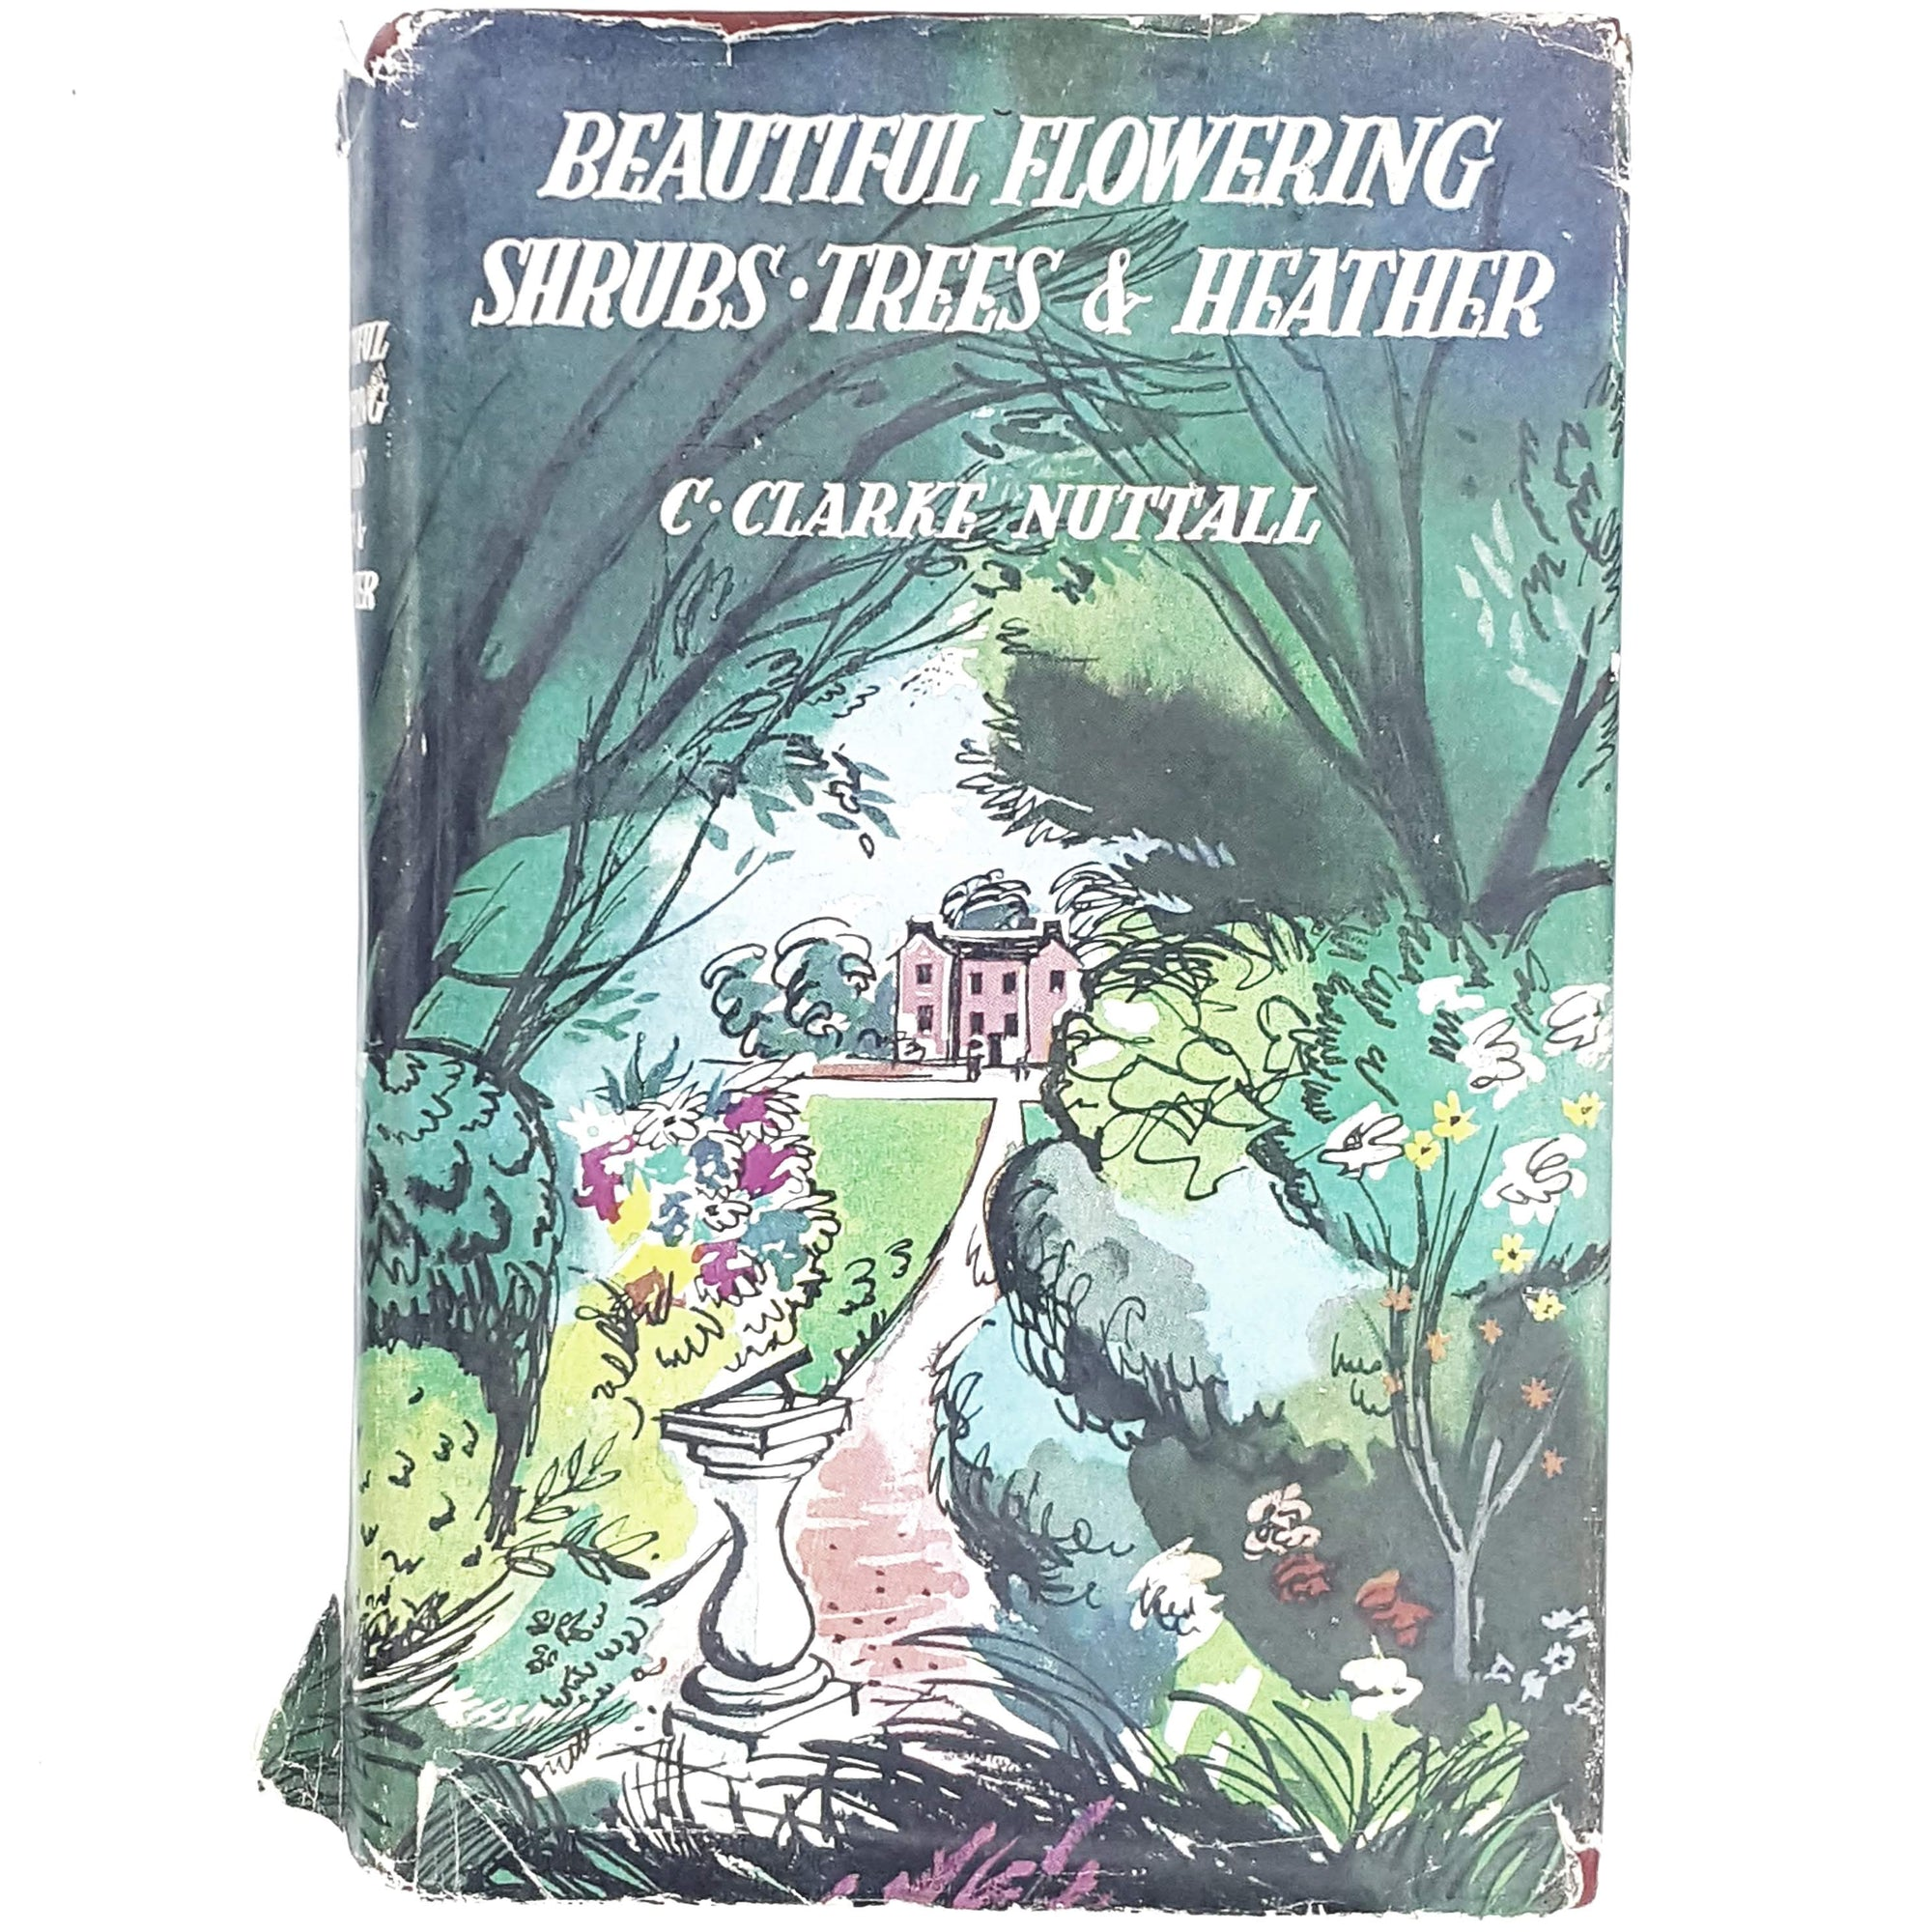 Vintage Gardening: Beautiful Flowering Shrubs • Trees & Heather